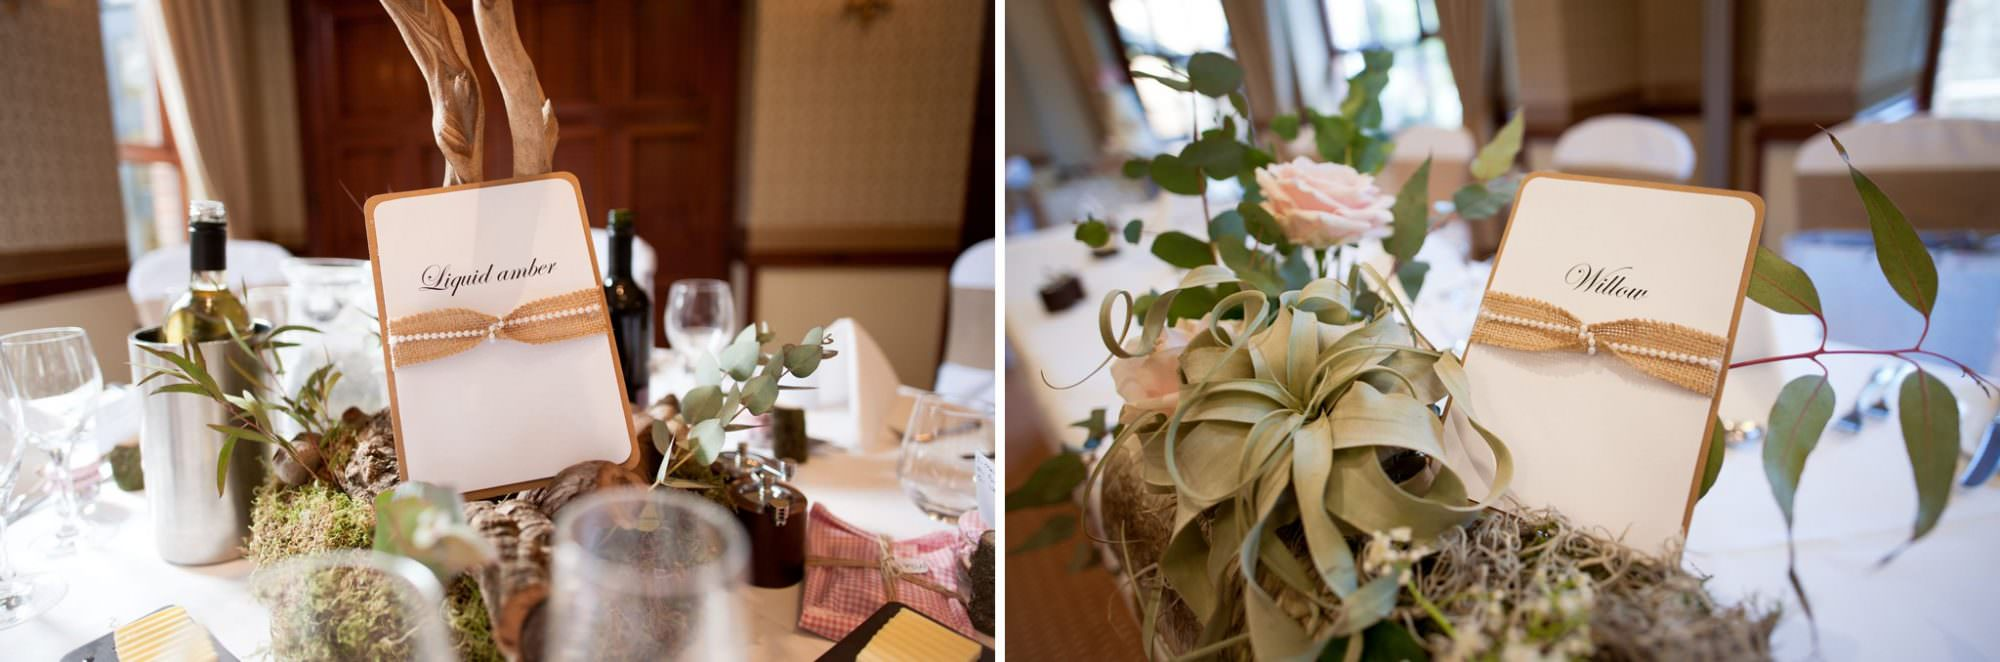 Wedding decorations by Little Lillies